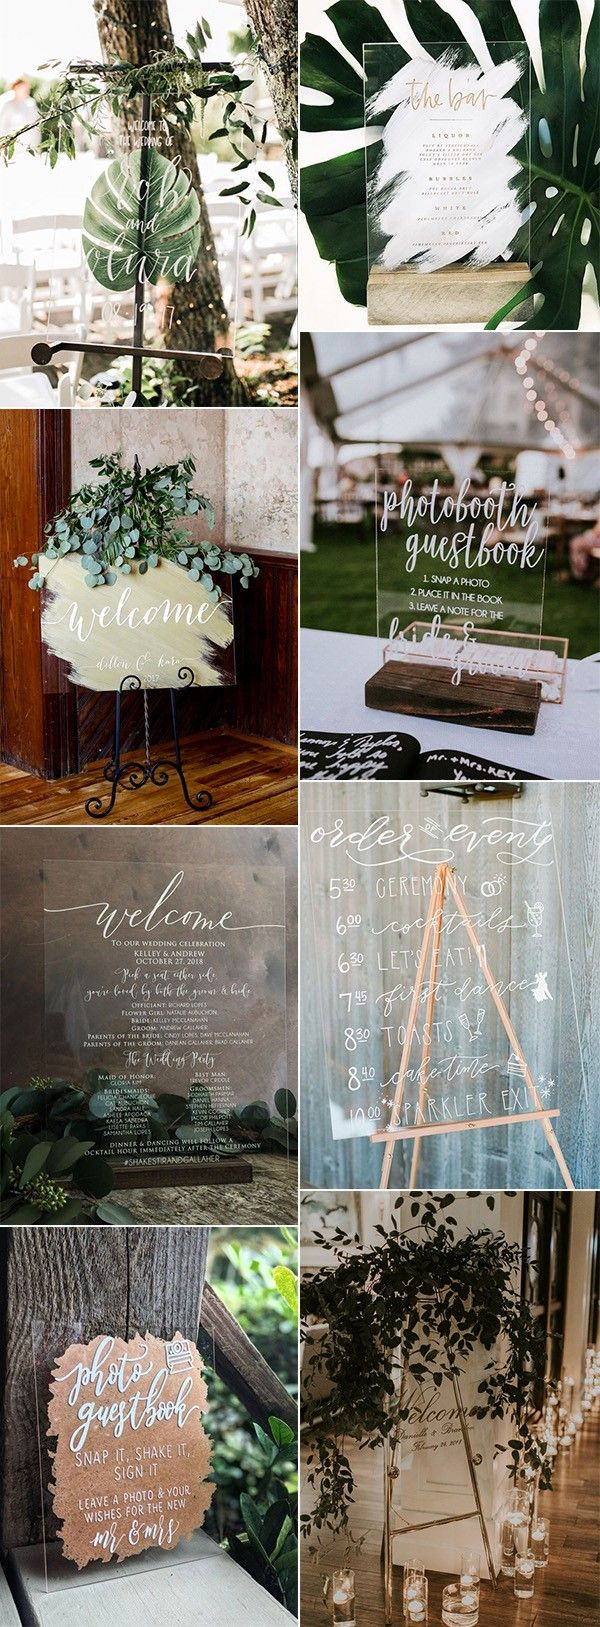 Wedding decorations for house january 2019  Chic Acrylic Wedding Signs to Love for  Trends  Wedding